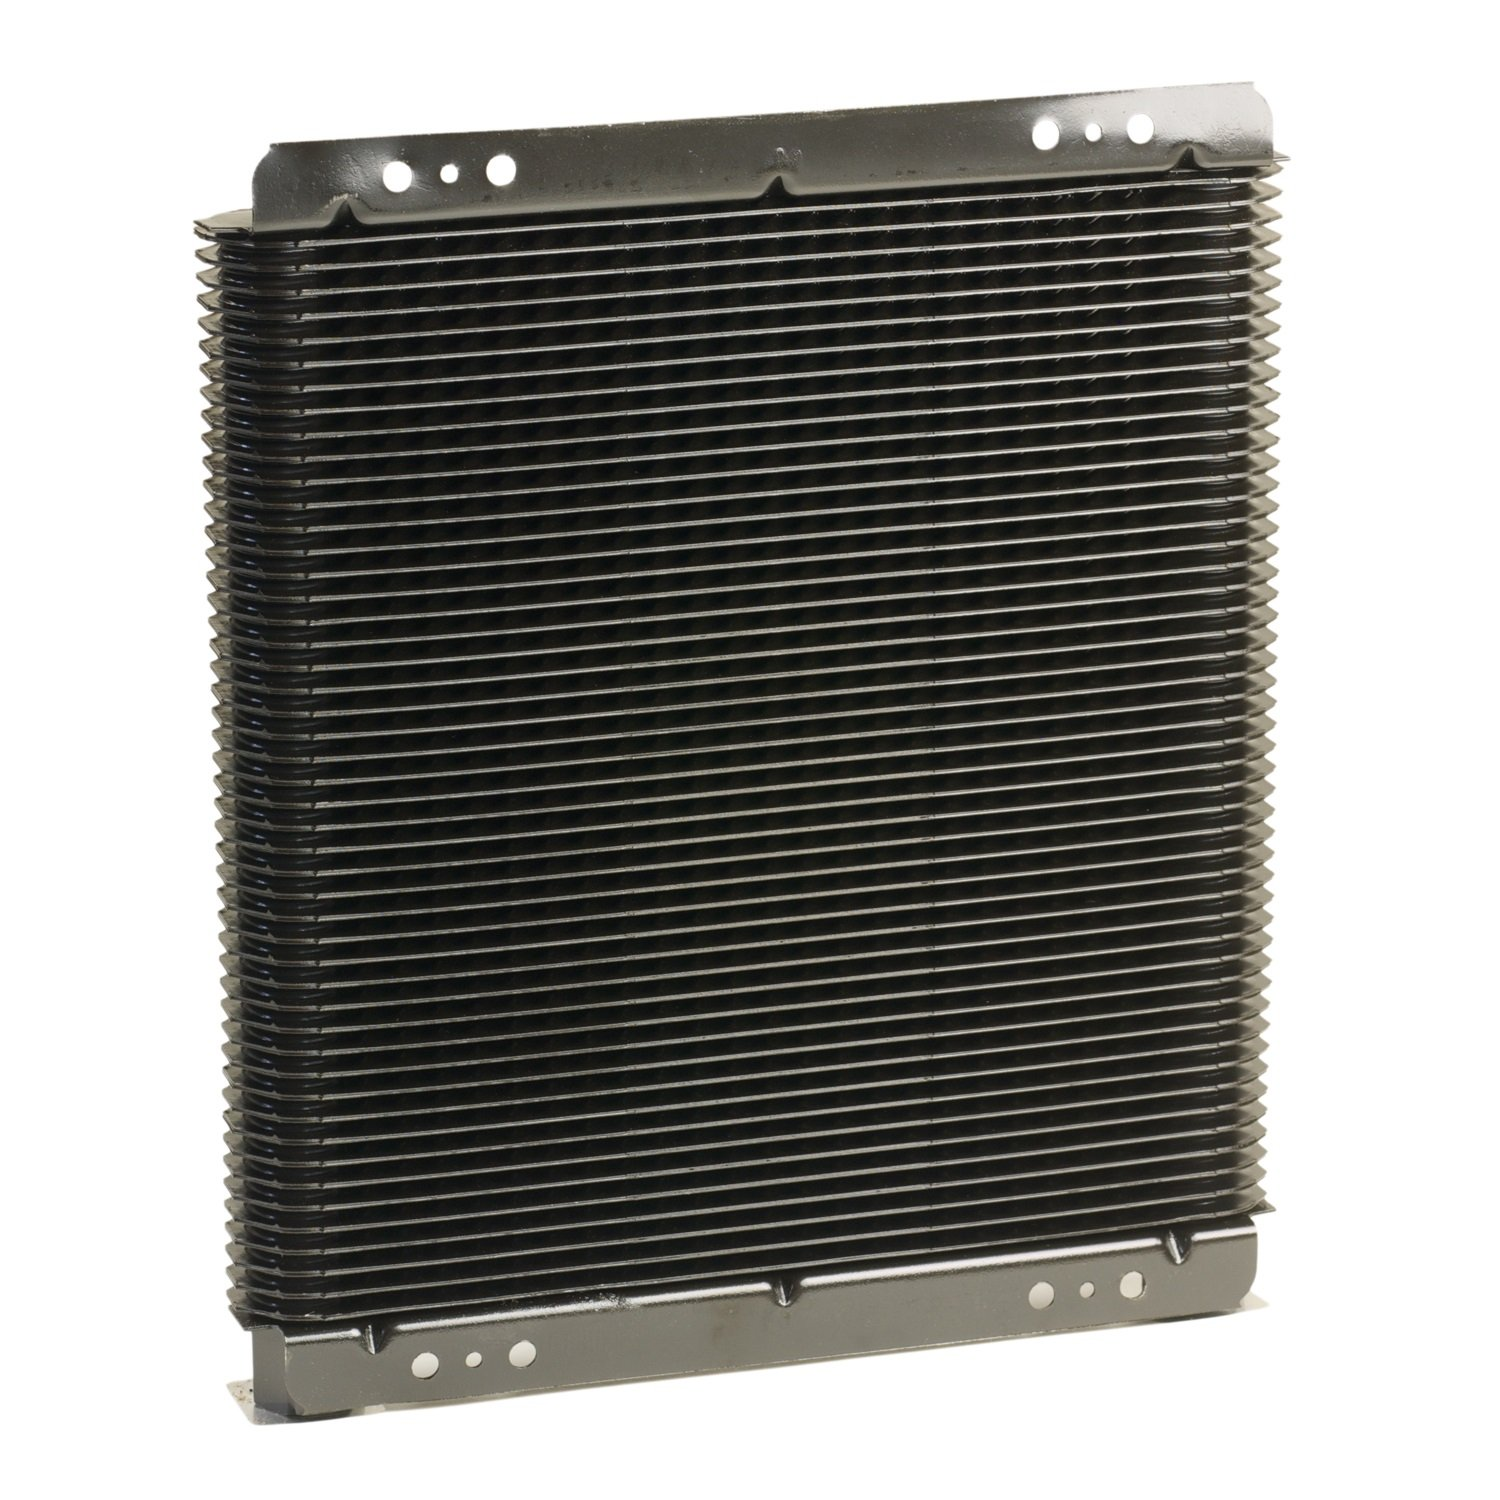 B&M 70274 SuperCooler Black Aluminum Fluid Cooler by B&M (Image #1)